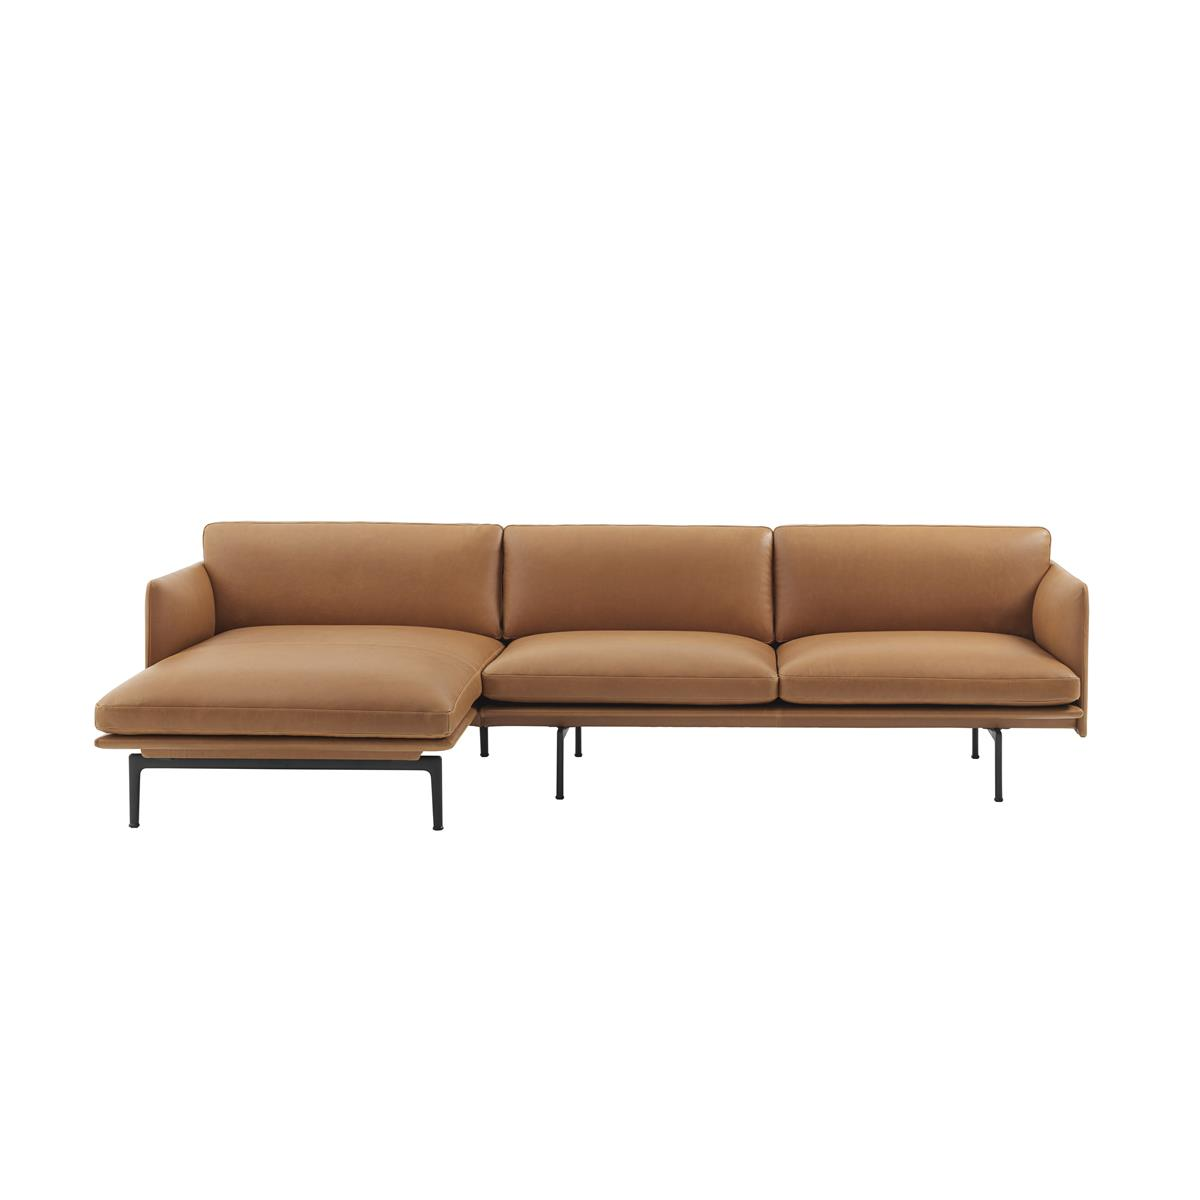 Outline Sofa / Chaise Lounge - Silk Leather